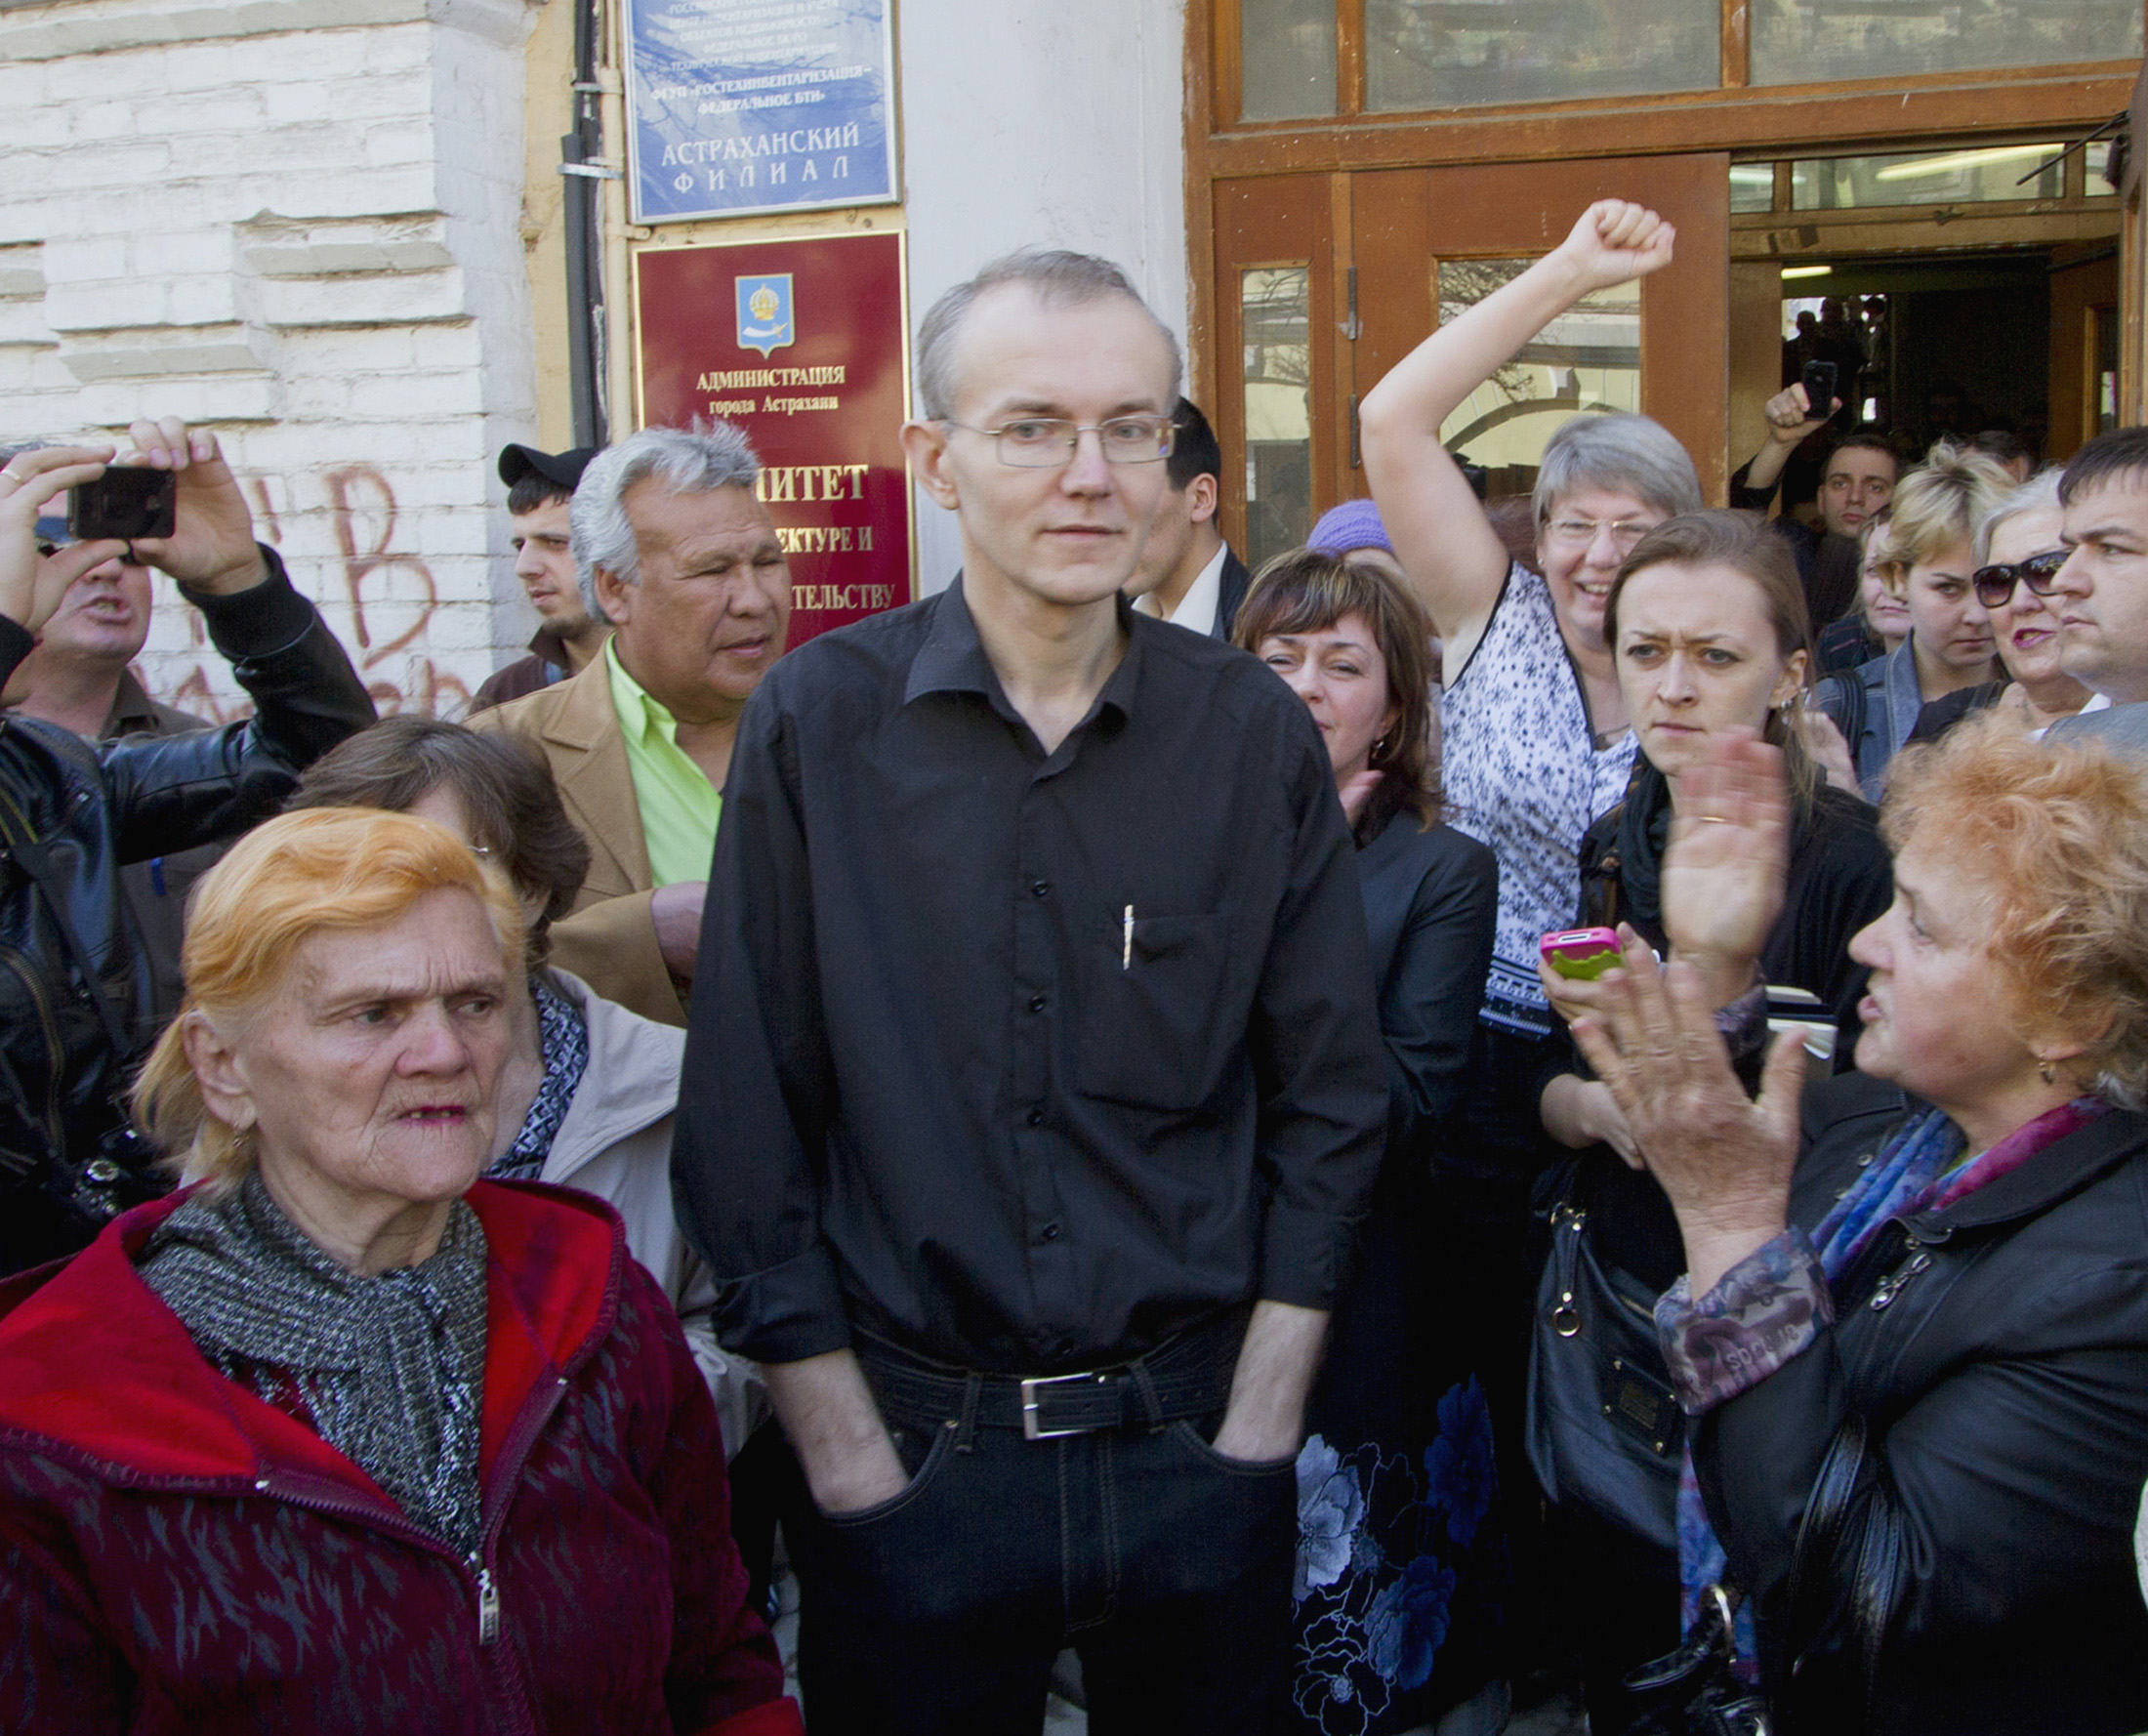 Supporters gather around Shein, the former mayoral candidate for the opposition party, «A Just Russia», in the southern Russian city of Astrakhan